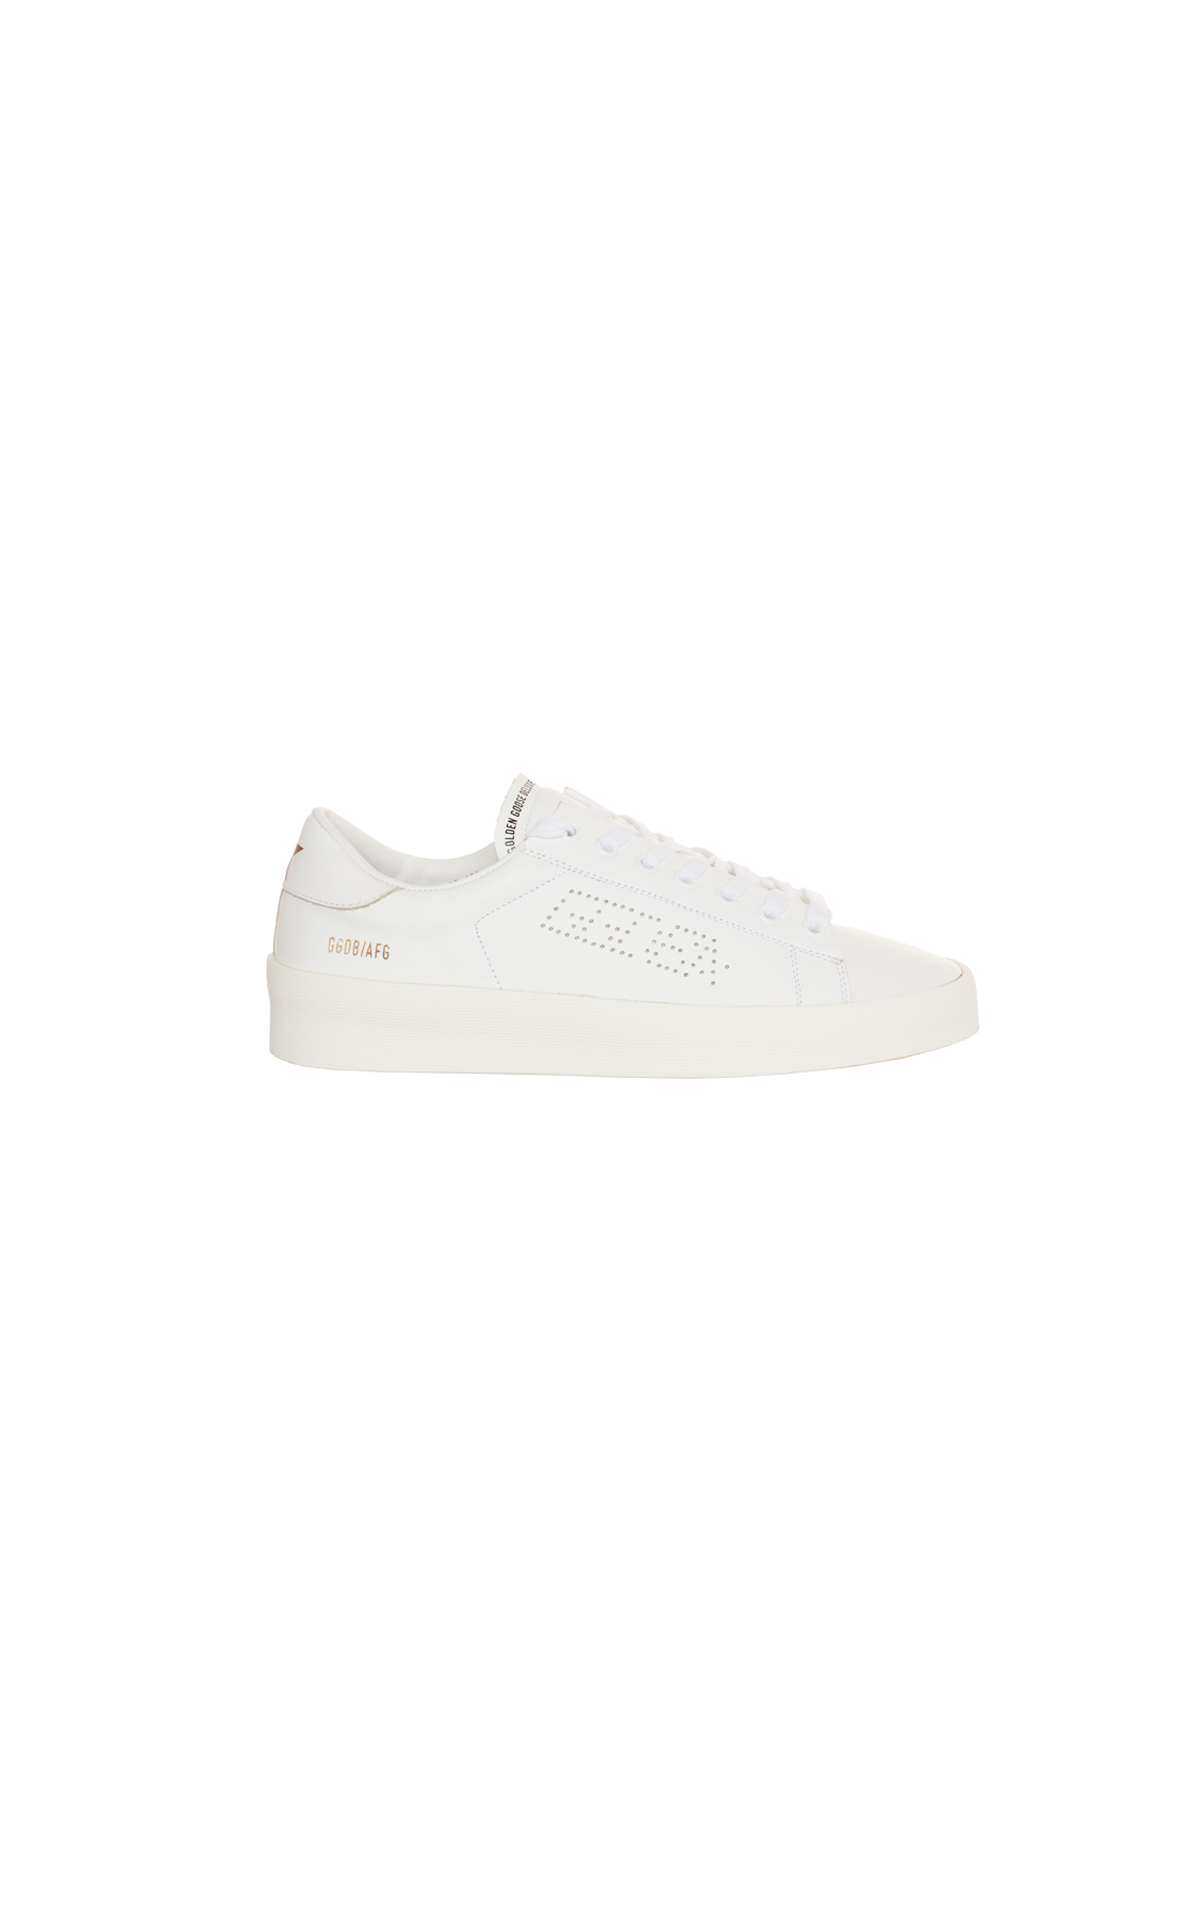 Golden Goose Deluxe Brand High end white leather sneaker from Bicester Village